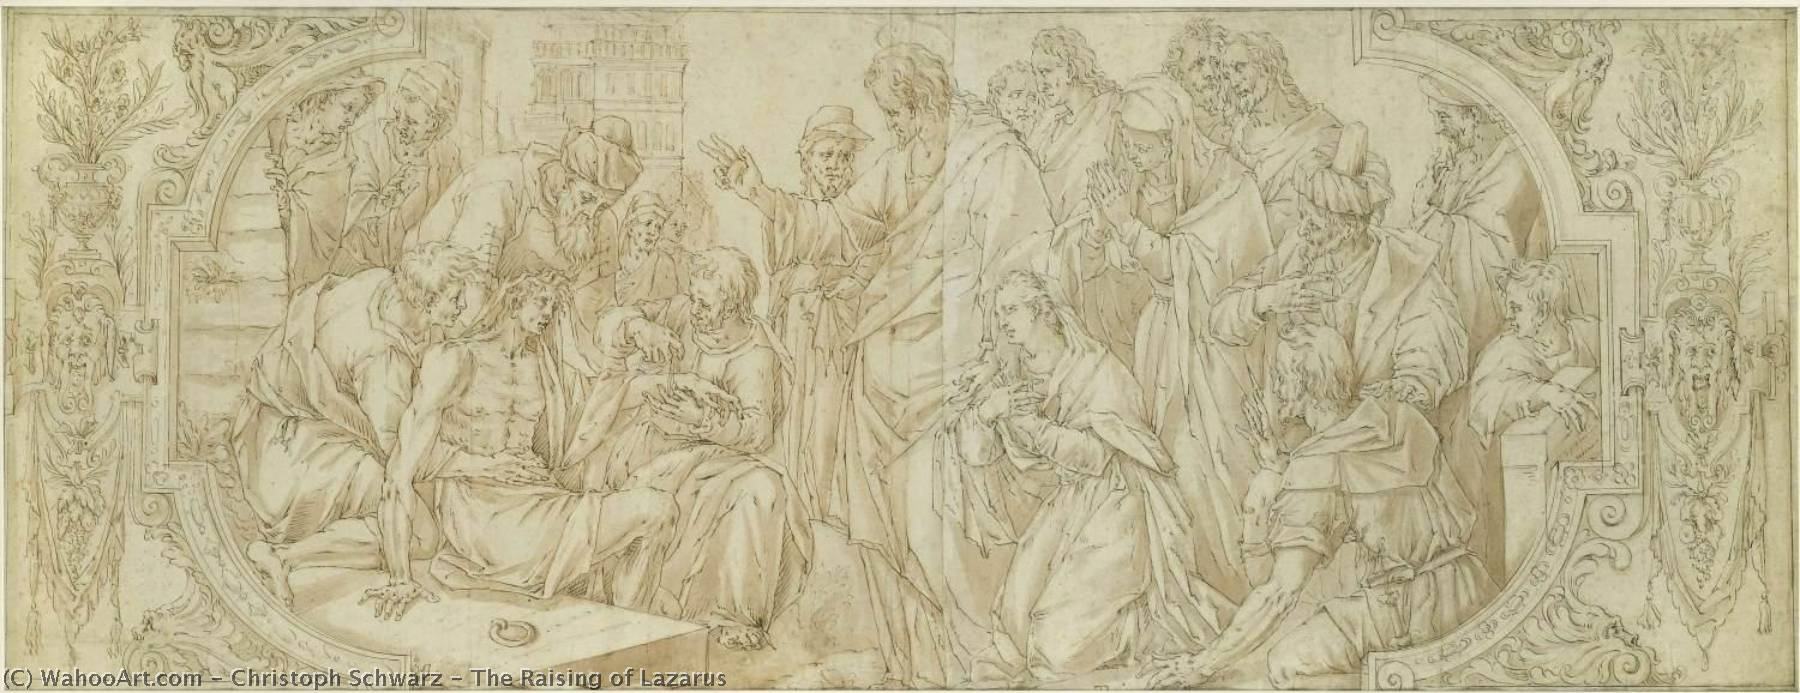 Wikioo.org - The Encyclopedia of Fine Arts - Painting, Artwork by Christoph Schwarz - The Raising of Lazarus